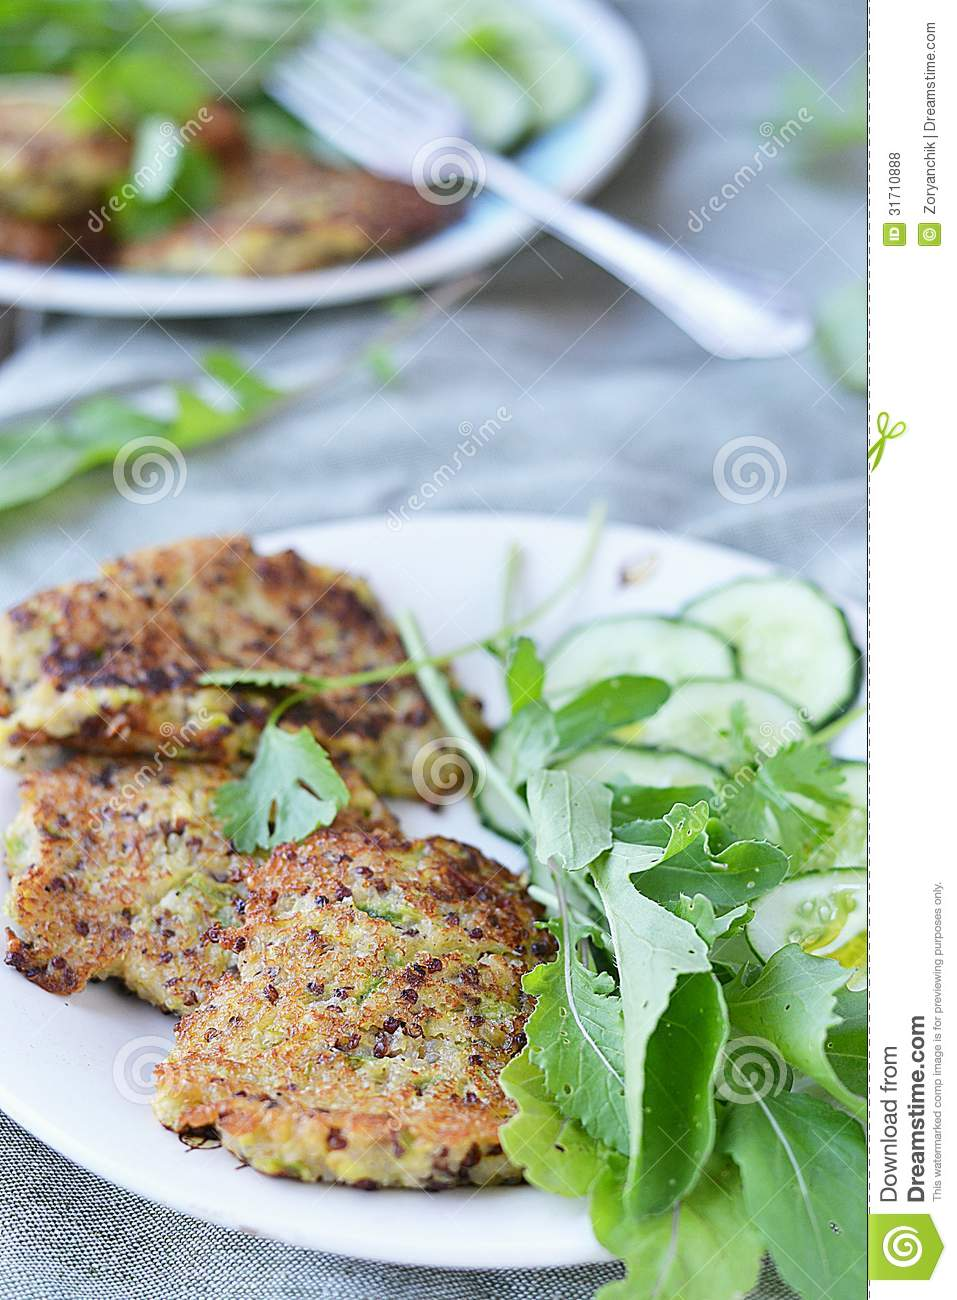 Quinoa Pancakes Royalty Free Stock Photos - Image: 31710888